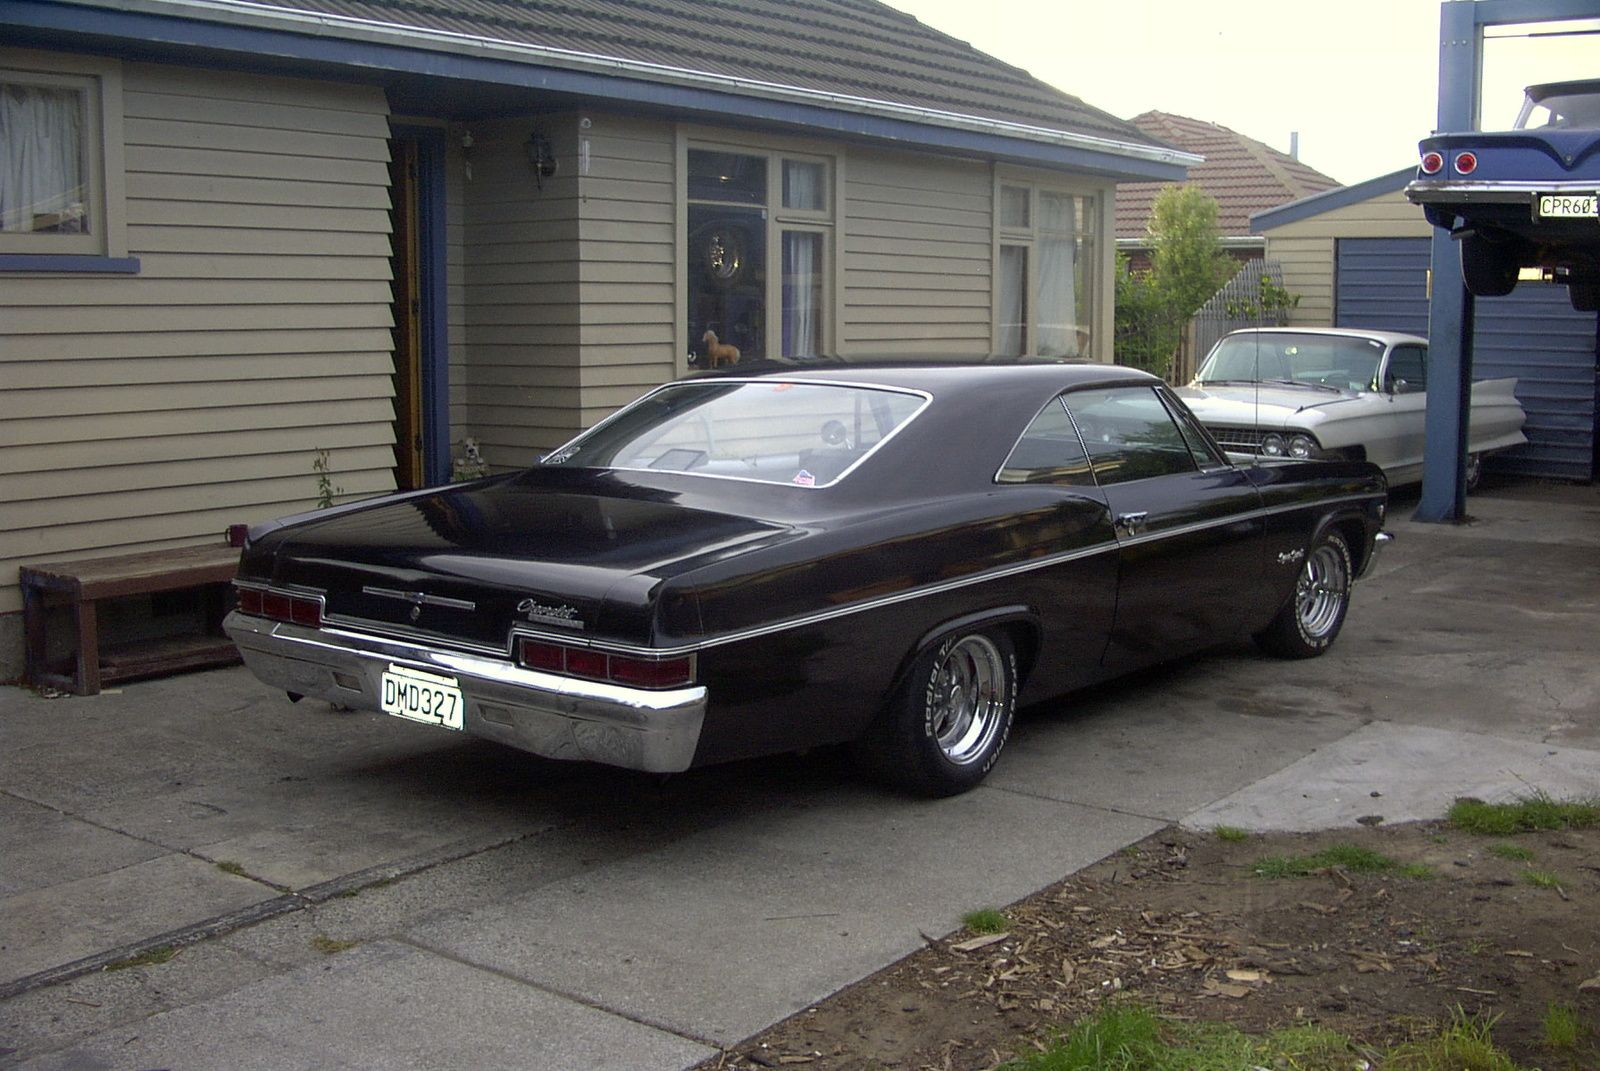 1966 Impala Ss For Sale Chevrolet Pictures Chevy Air Conditioning Picture